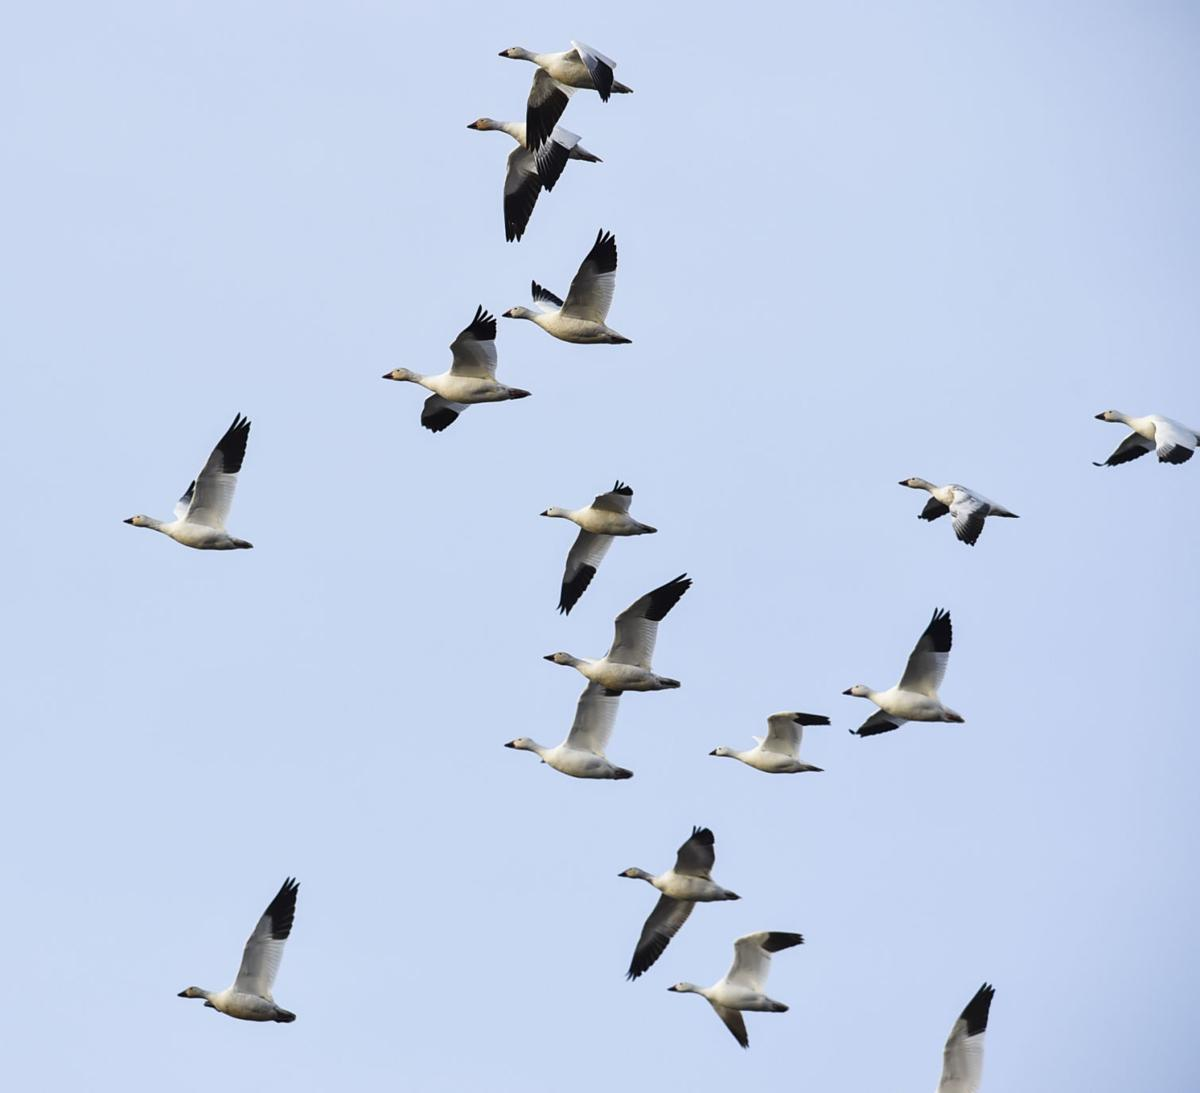 Freezout Lake Snow Goose Migration